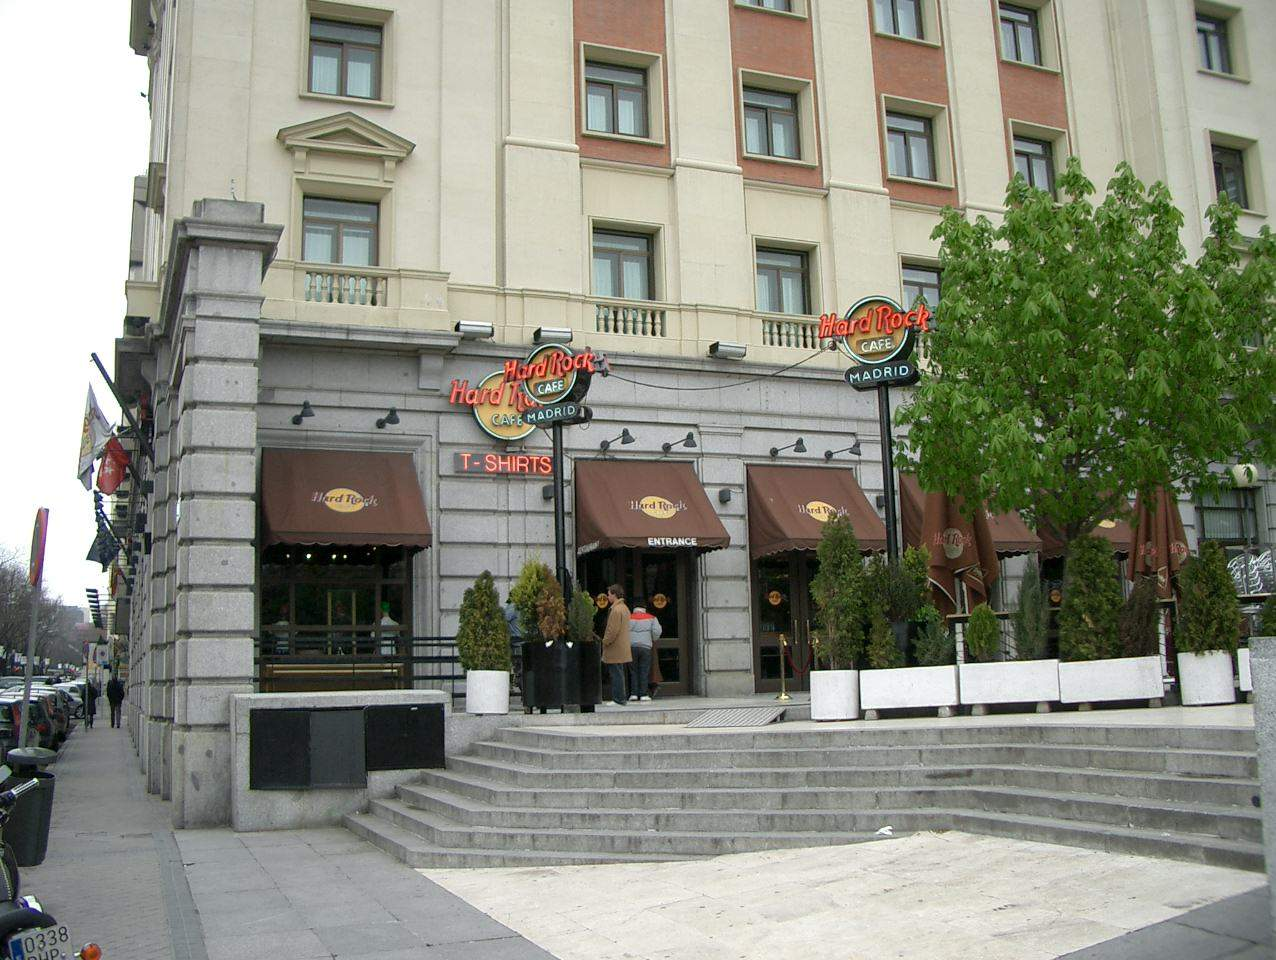 Hard Rock Cafe Zaragoza Spain